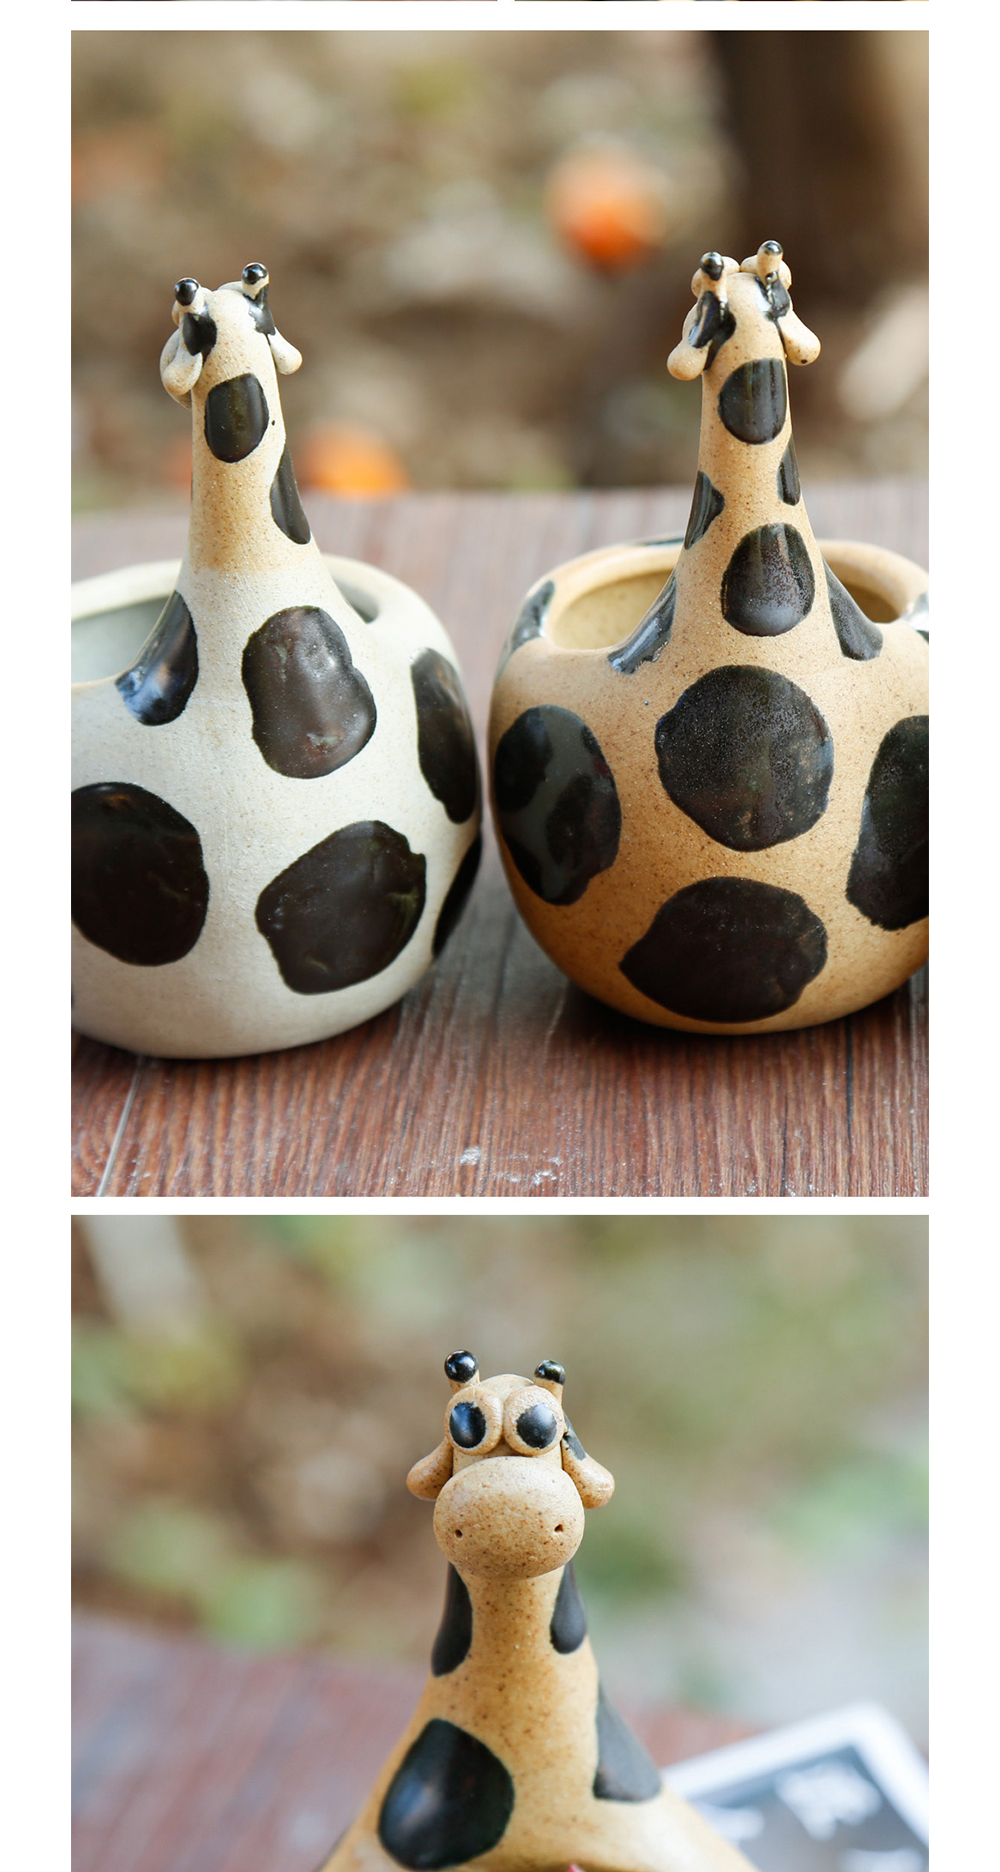 Giraffe Flower Pot Handmade Creative Pot